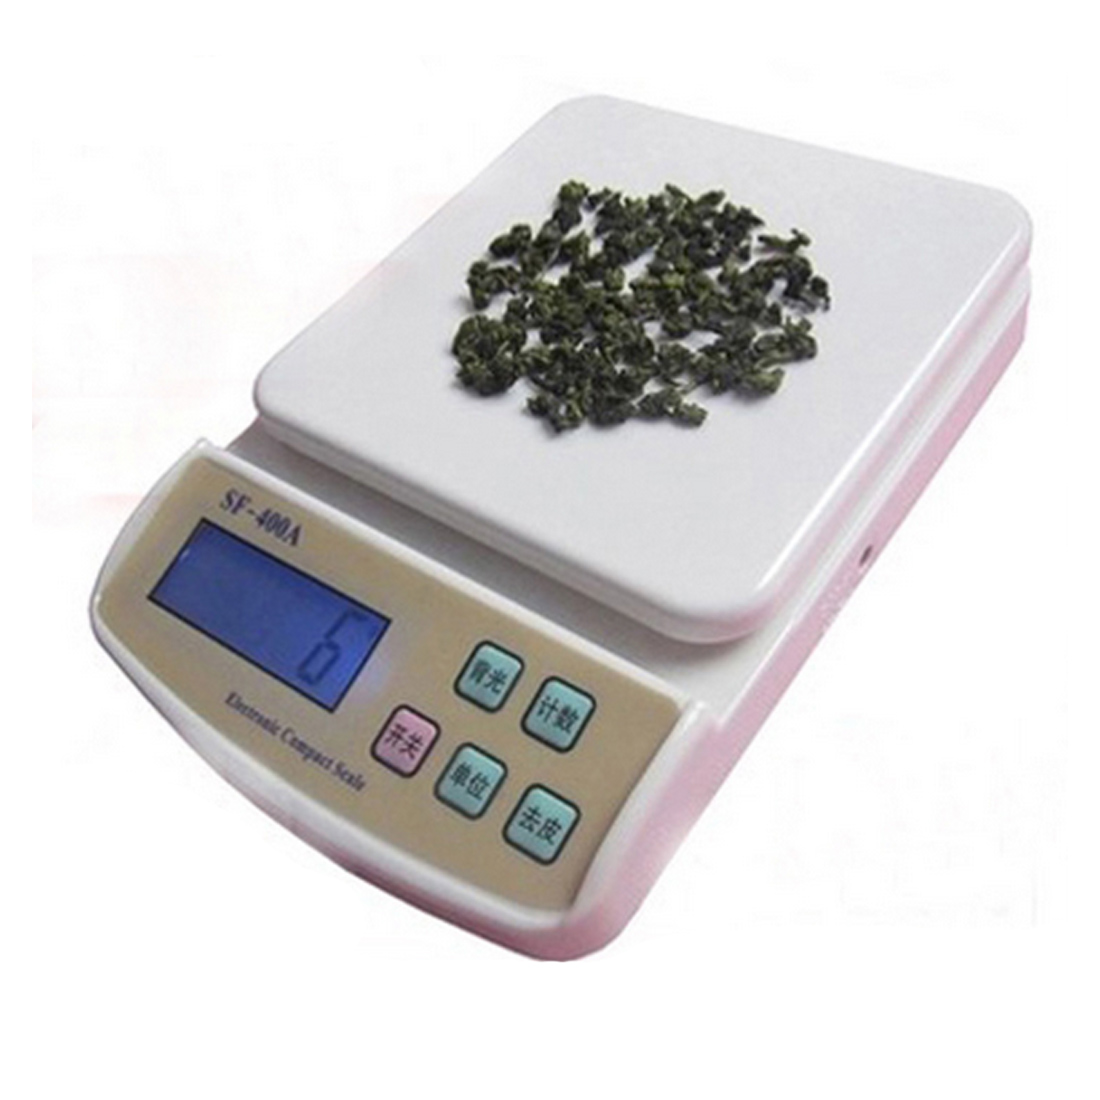 Digital Electronic Cales Pocket 10Kg/1g Kitchen Weighing Scale LCD Display Backlight Scales Kitchen Foods Cale New Mini